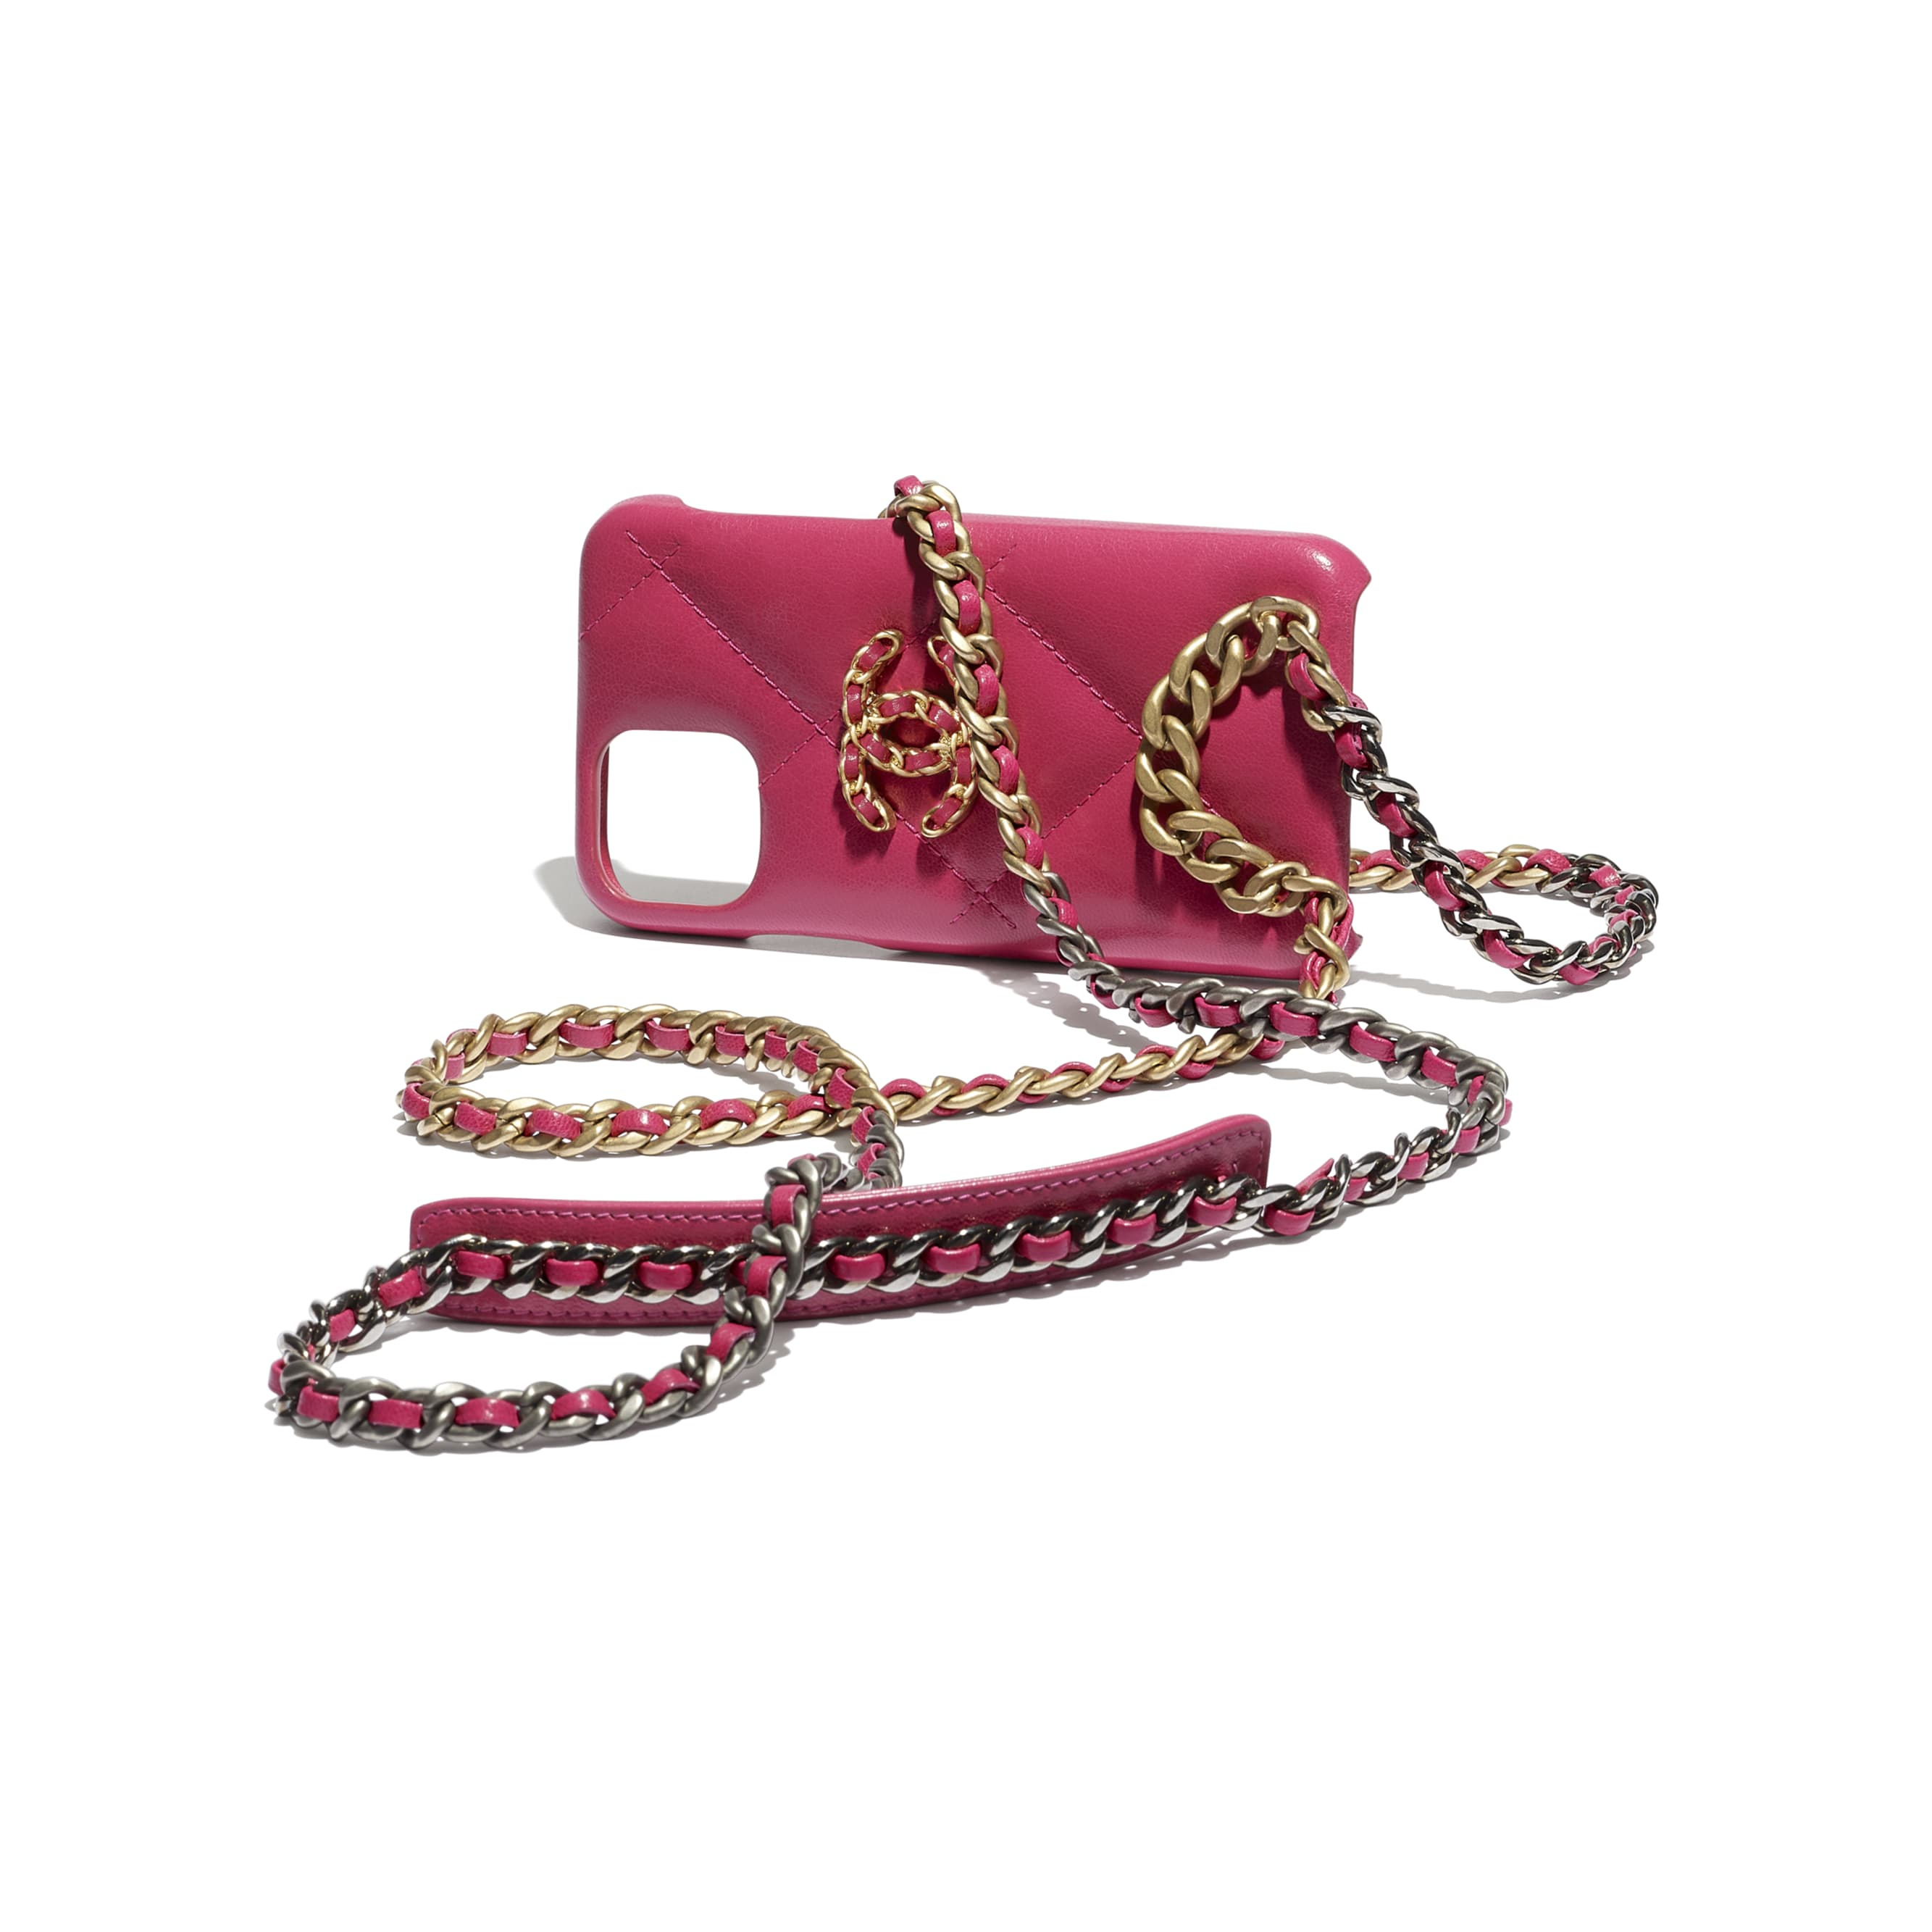 Case for iPhone XI Pro with Chain - Pink - Shiny Goatskin, Gold-Tone, Silver-Tone & Ruthenium-Finish Metal - CHANEL - Extra view - see standard sized version